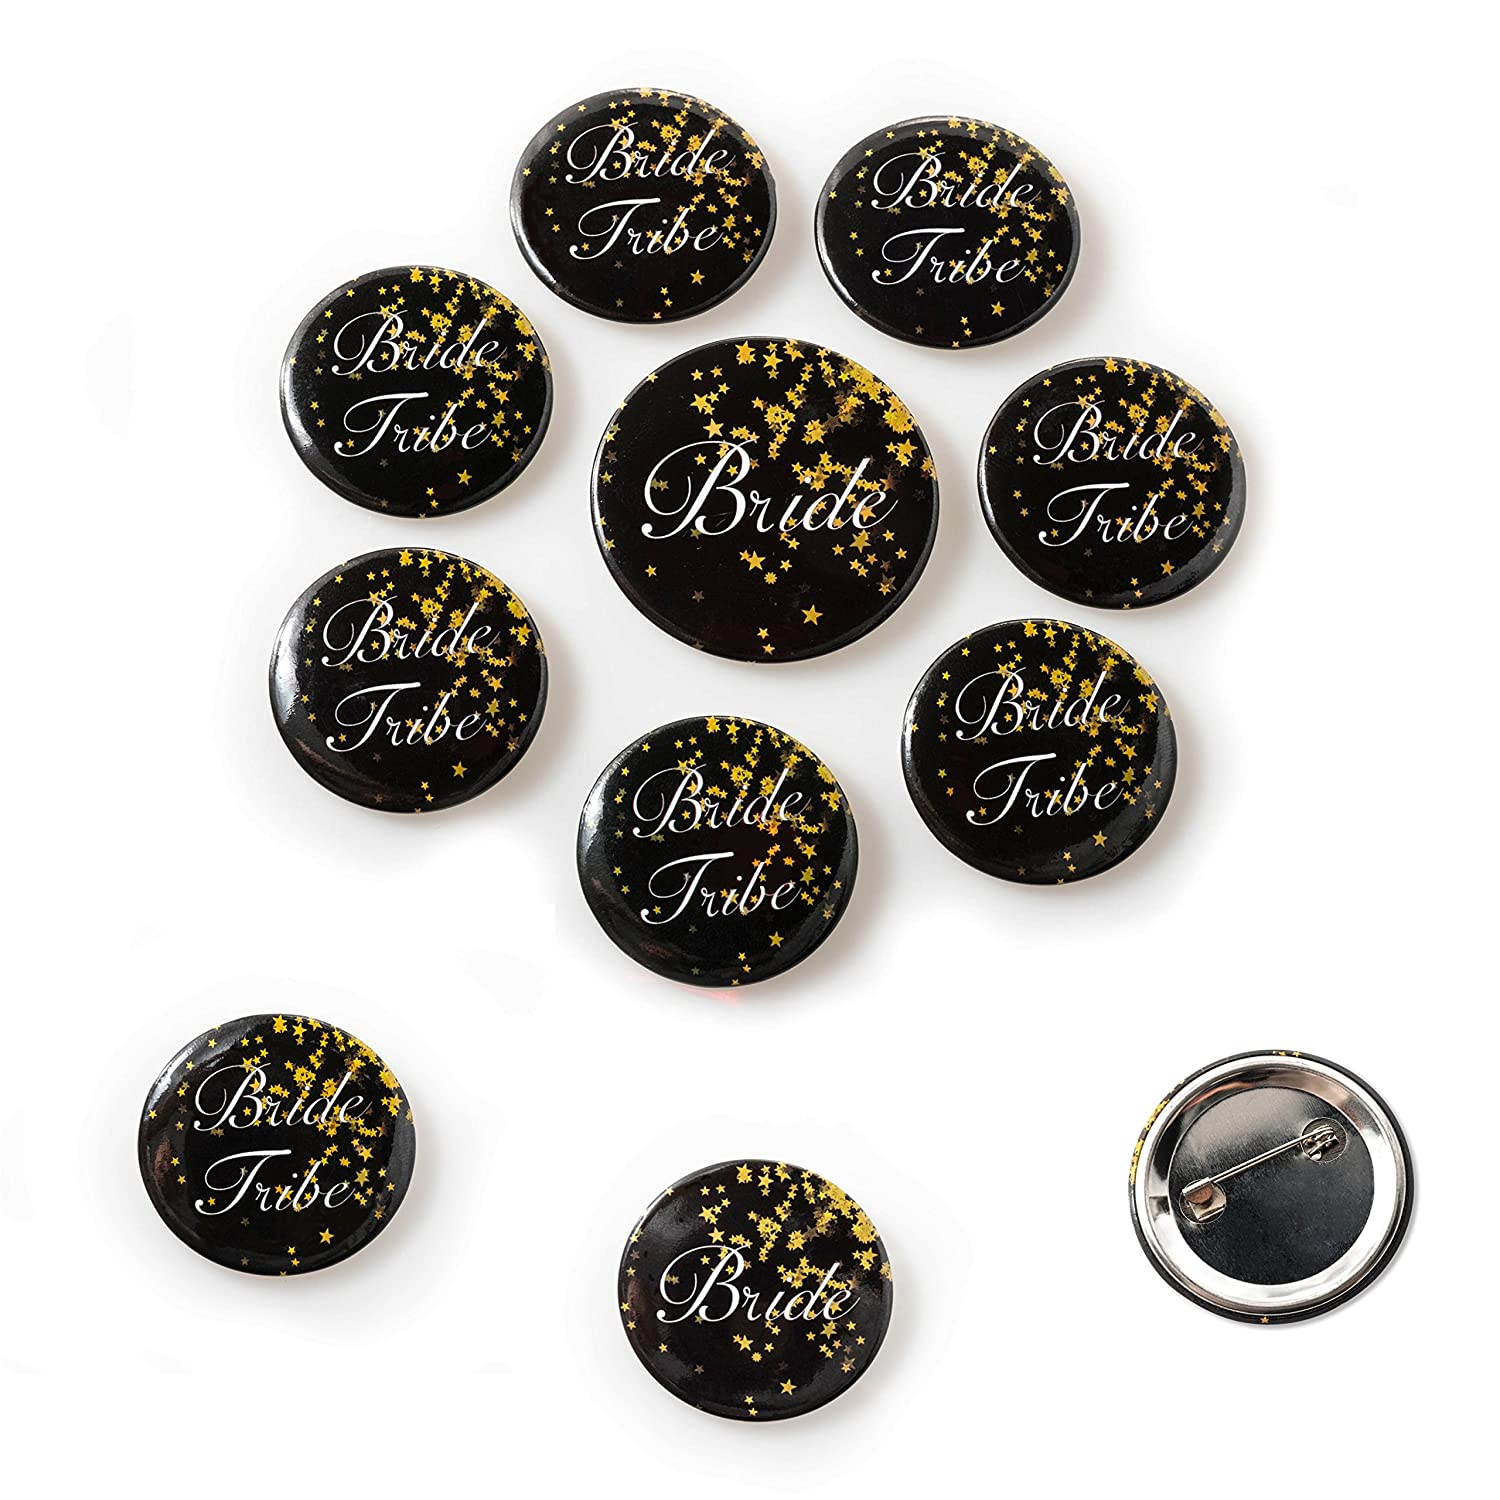 and 8 Bachelorette Buttons Bachelorette Party Bride to Be Kit 1 LED Bride Cup 12 Bride and Bride Tribe Tattoos